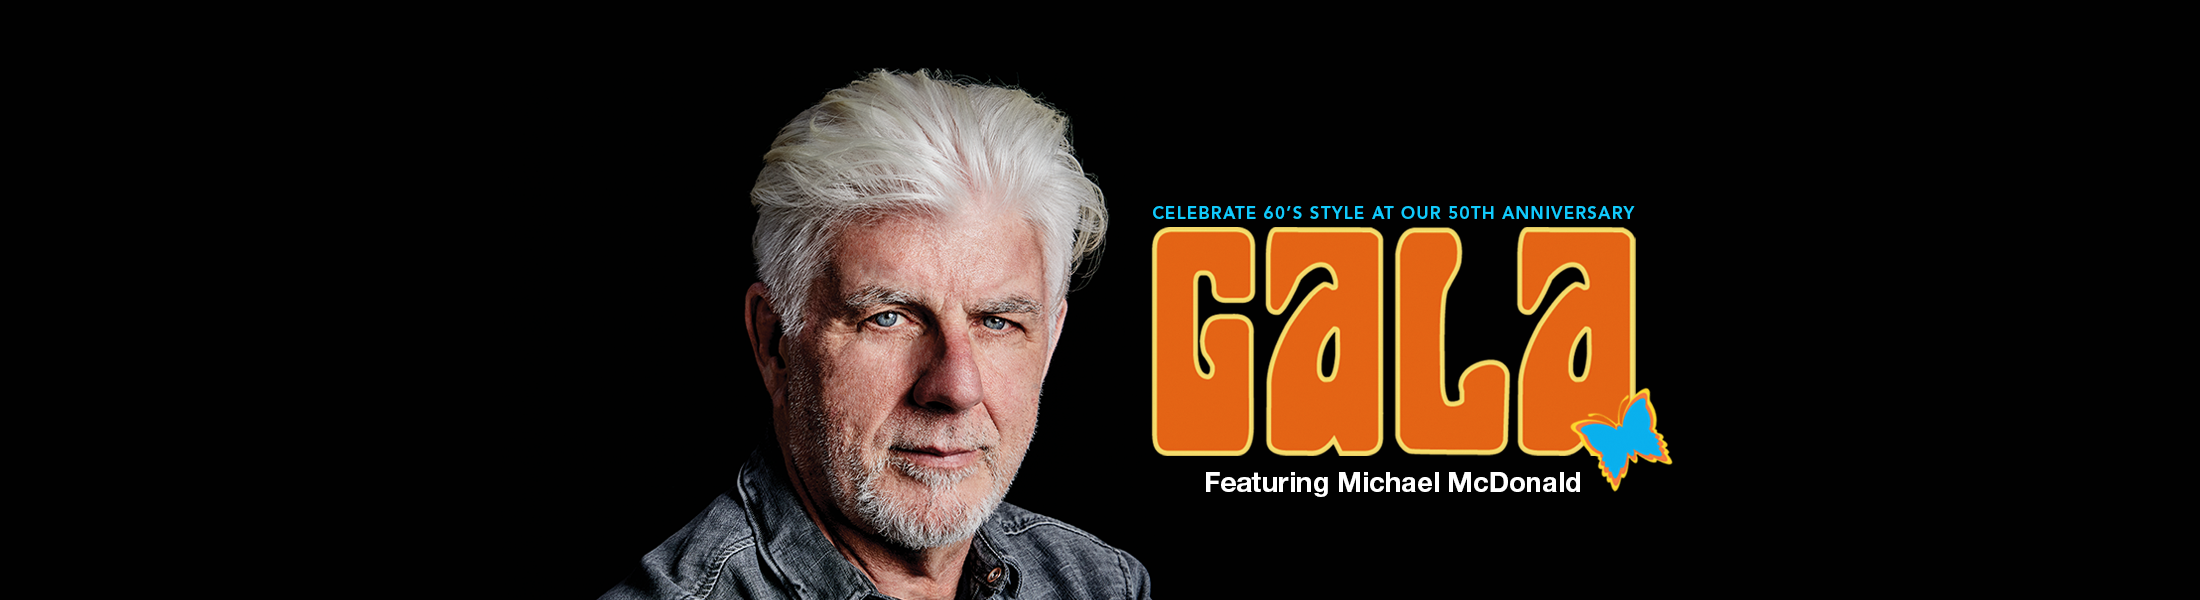 Celebrate 60's style at our 50th anniversary Gala featuring Michael McDonald